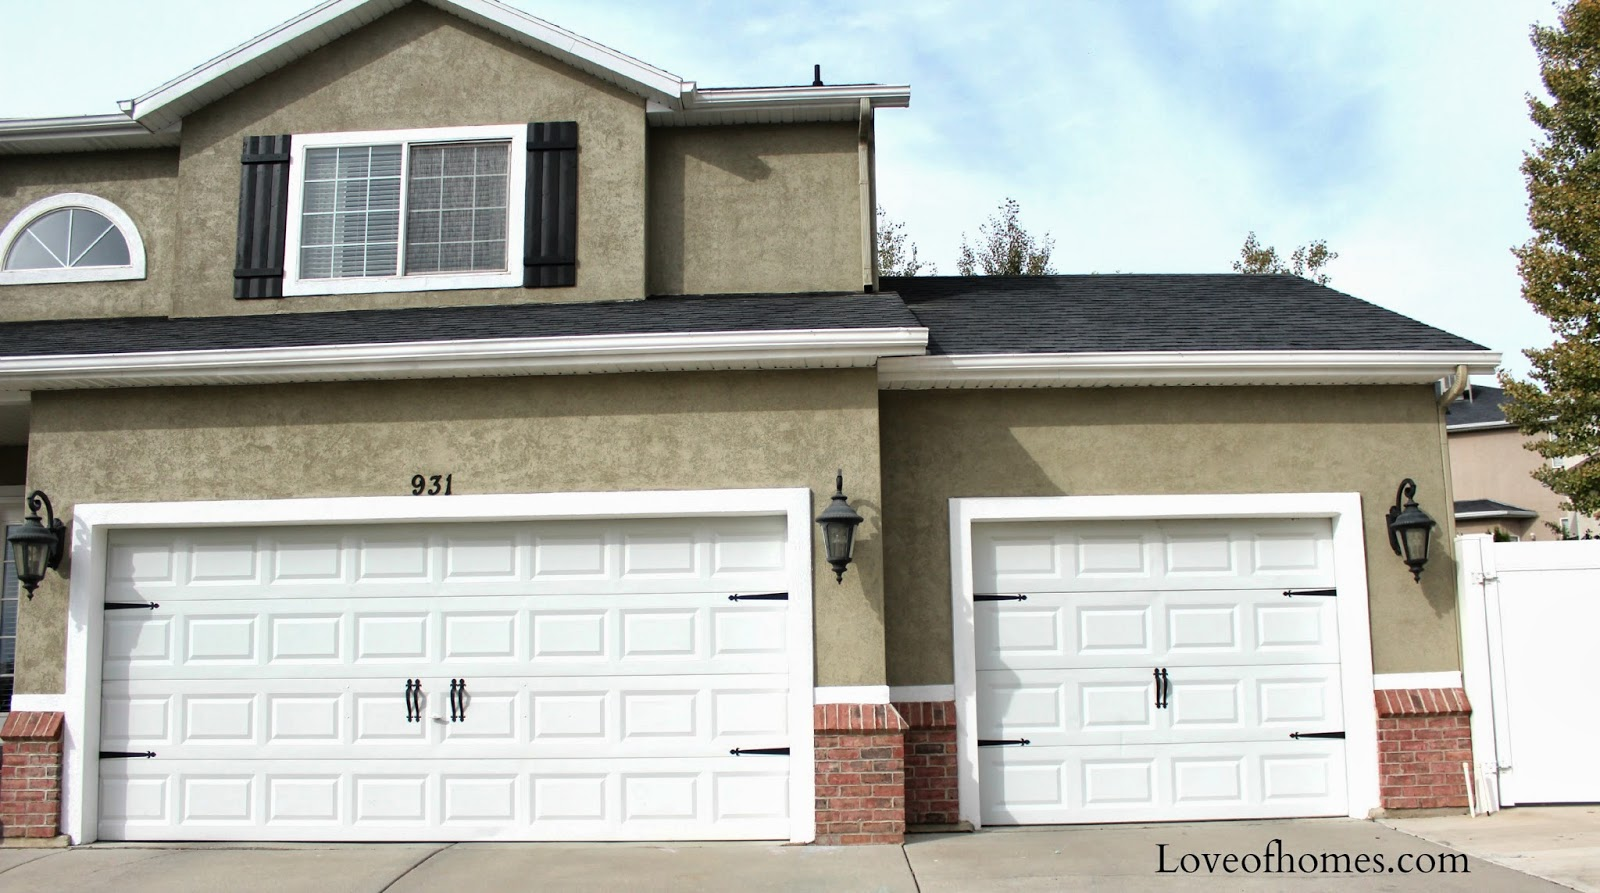 Love of homes garage doors i decided to place two sets of double handles closer together like the other door we filled the holes in with screws painted them whiteyou hardly rubansaba